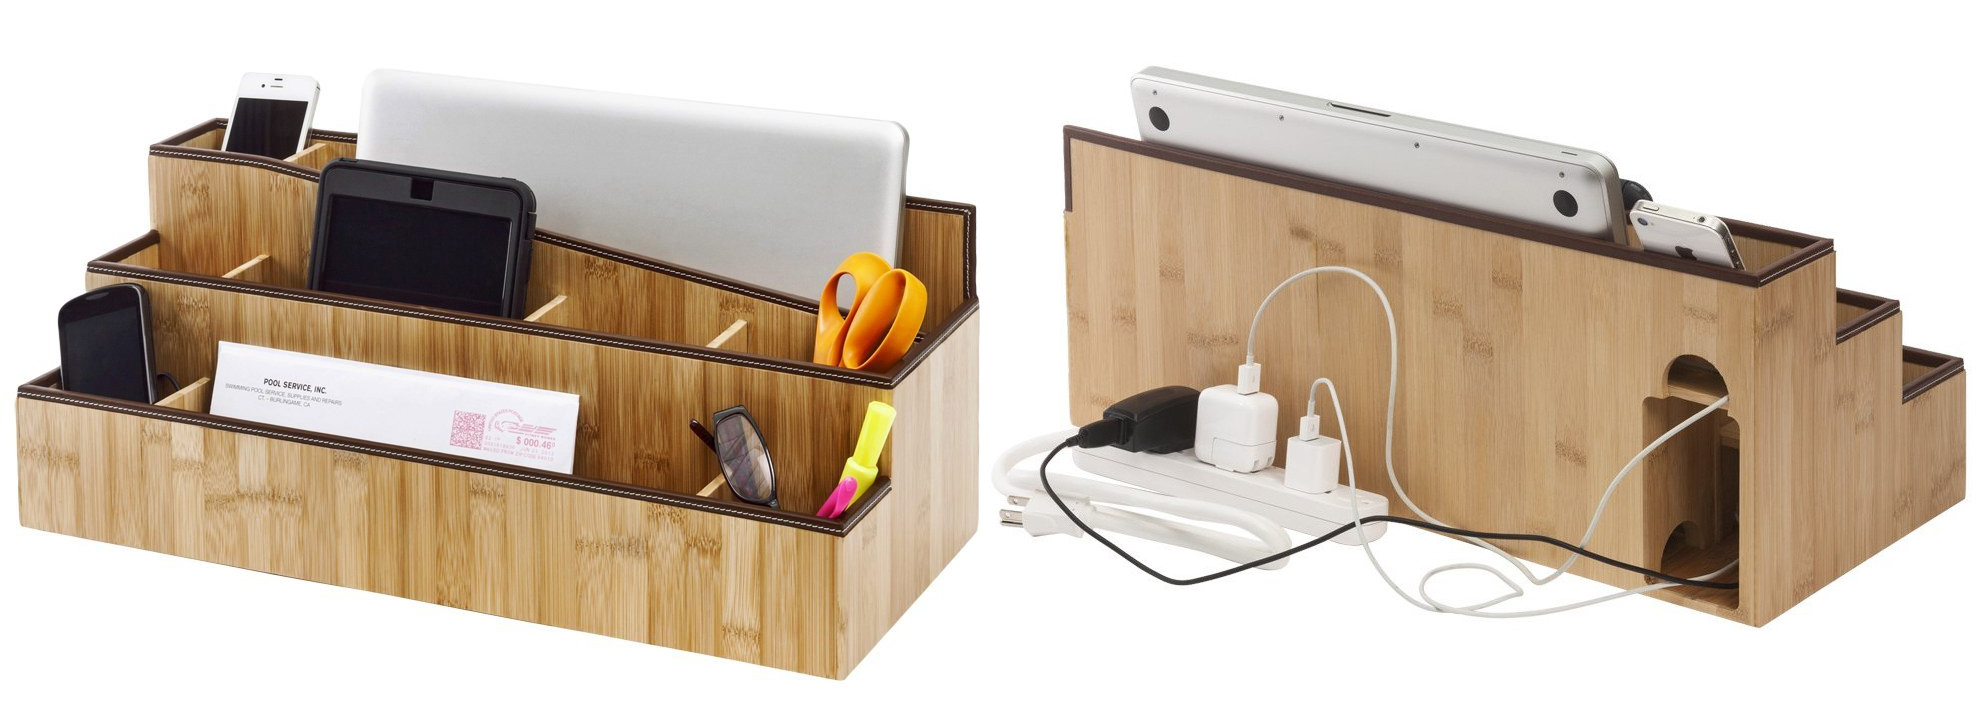 Desk organiser and charging station